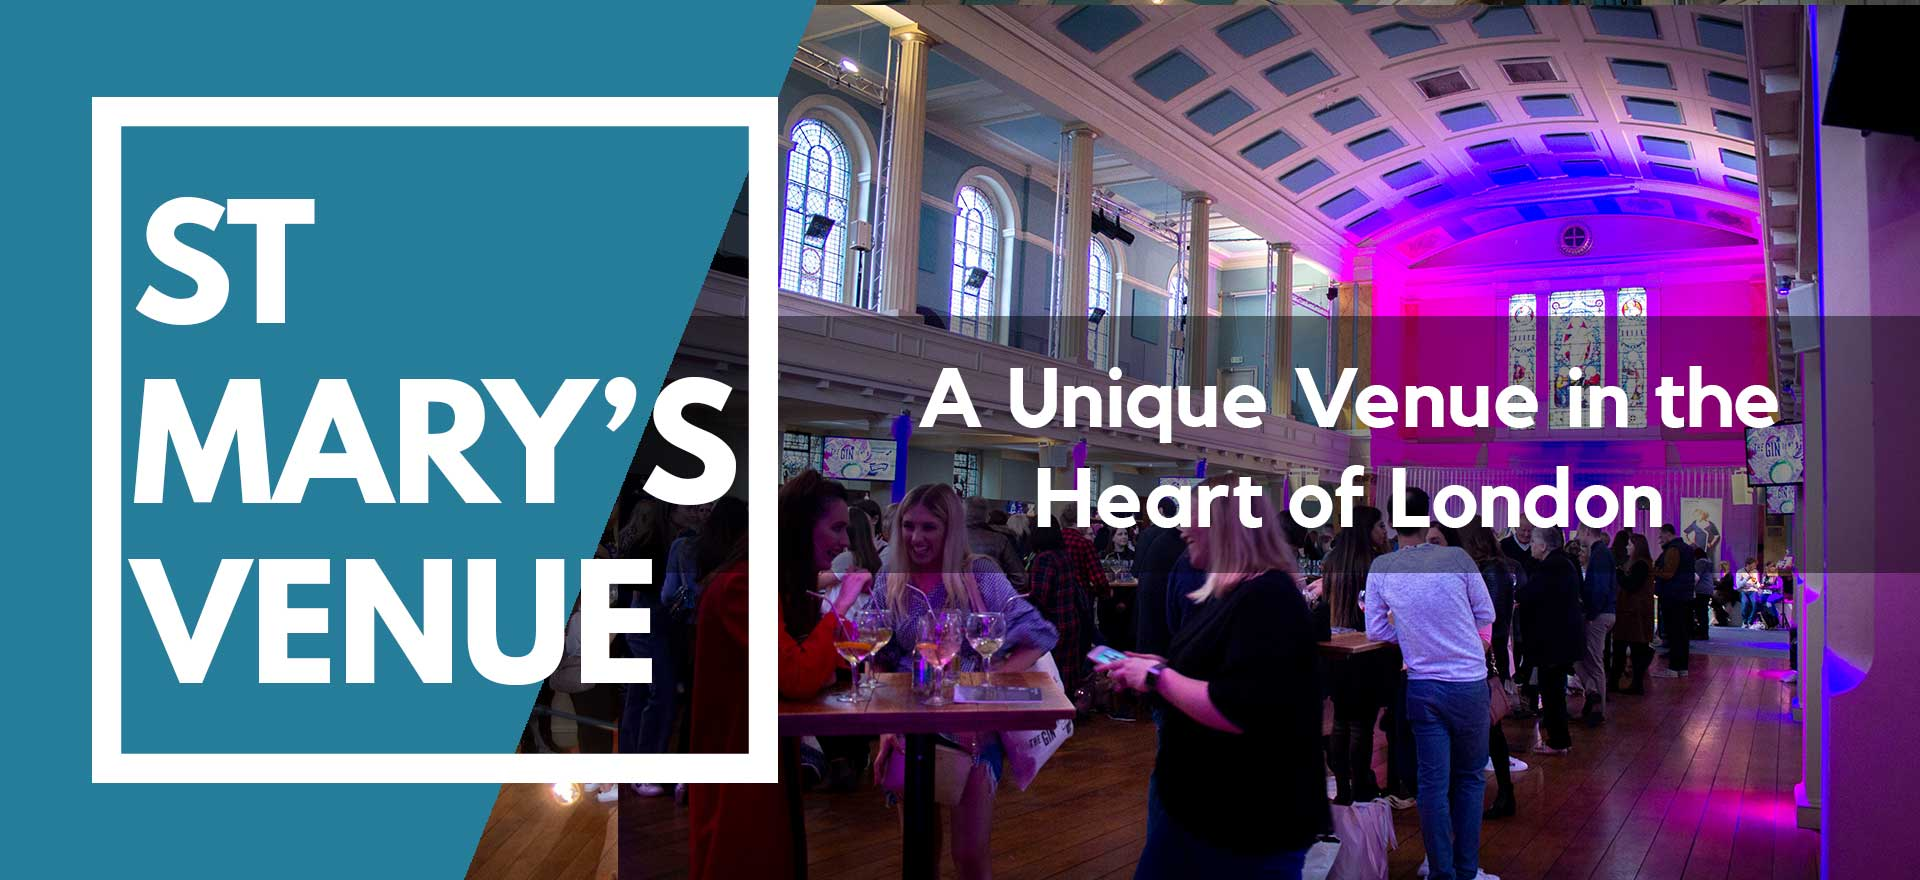 Gin festival with poseur tables and pink and blue lighting at St Mary's Venue Hire, London